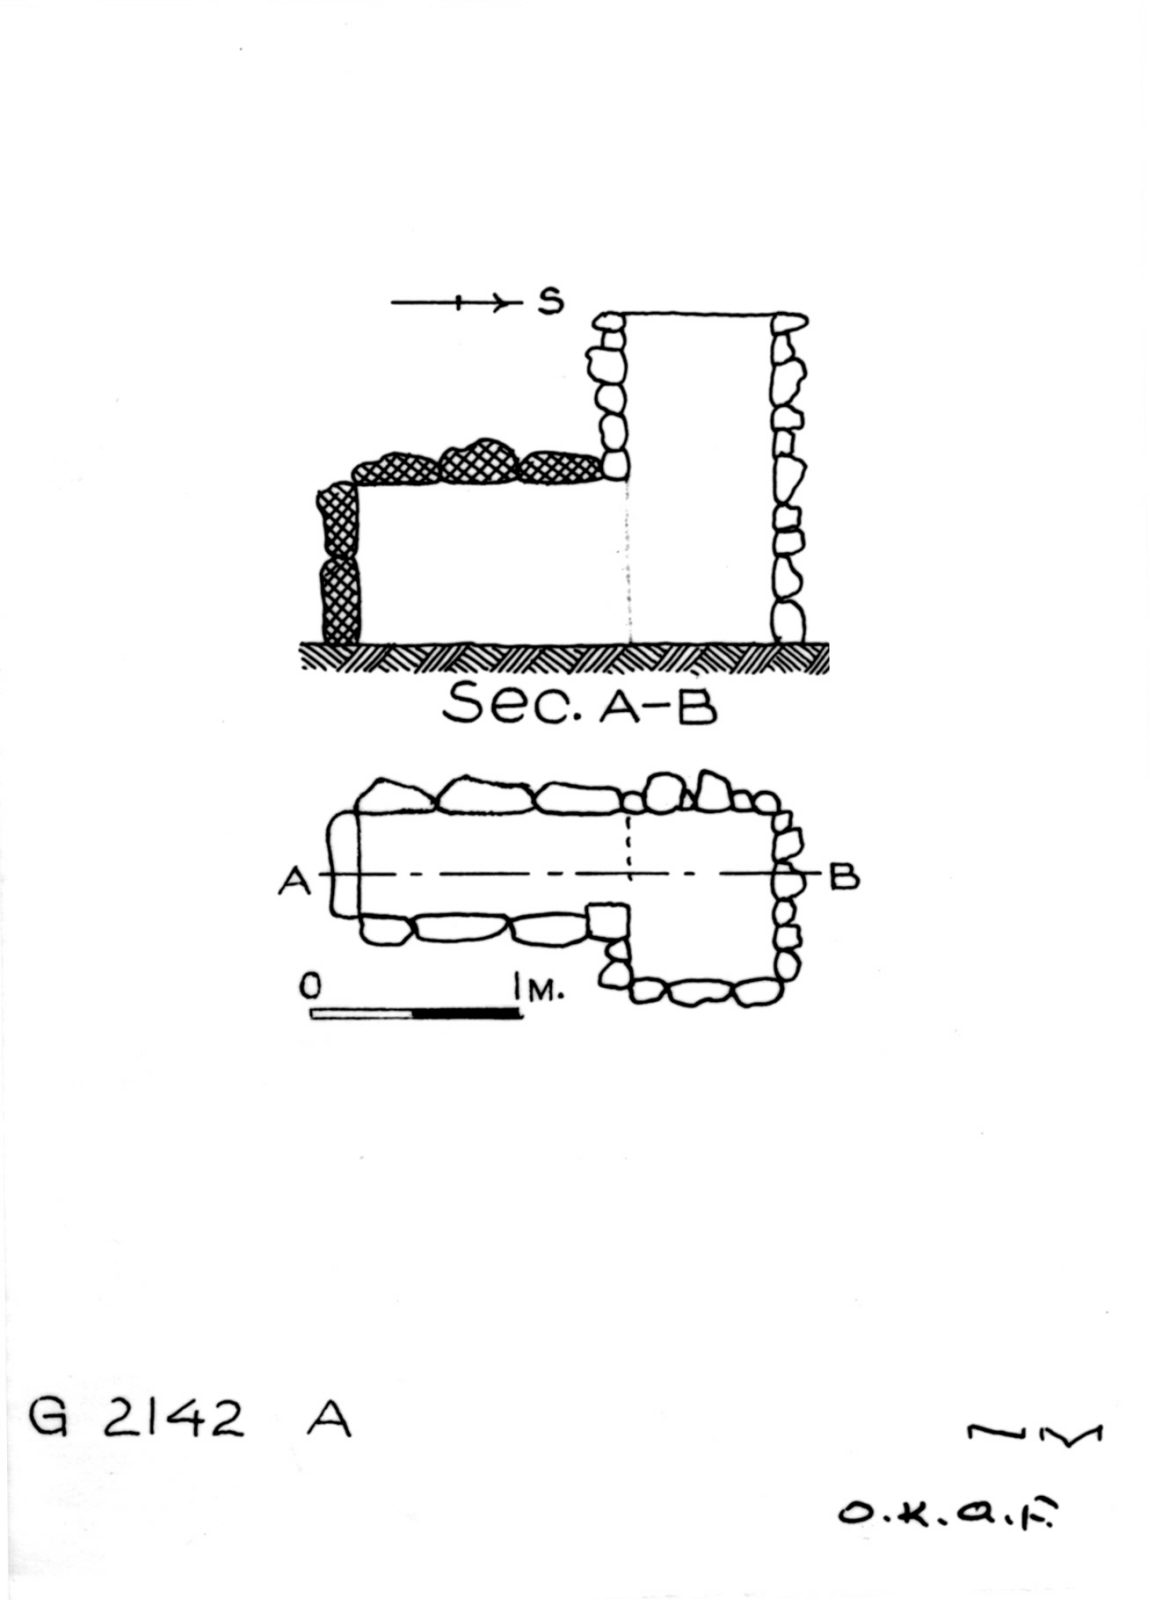 Maps and plans: G 2142, Shaft A